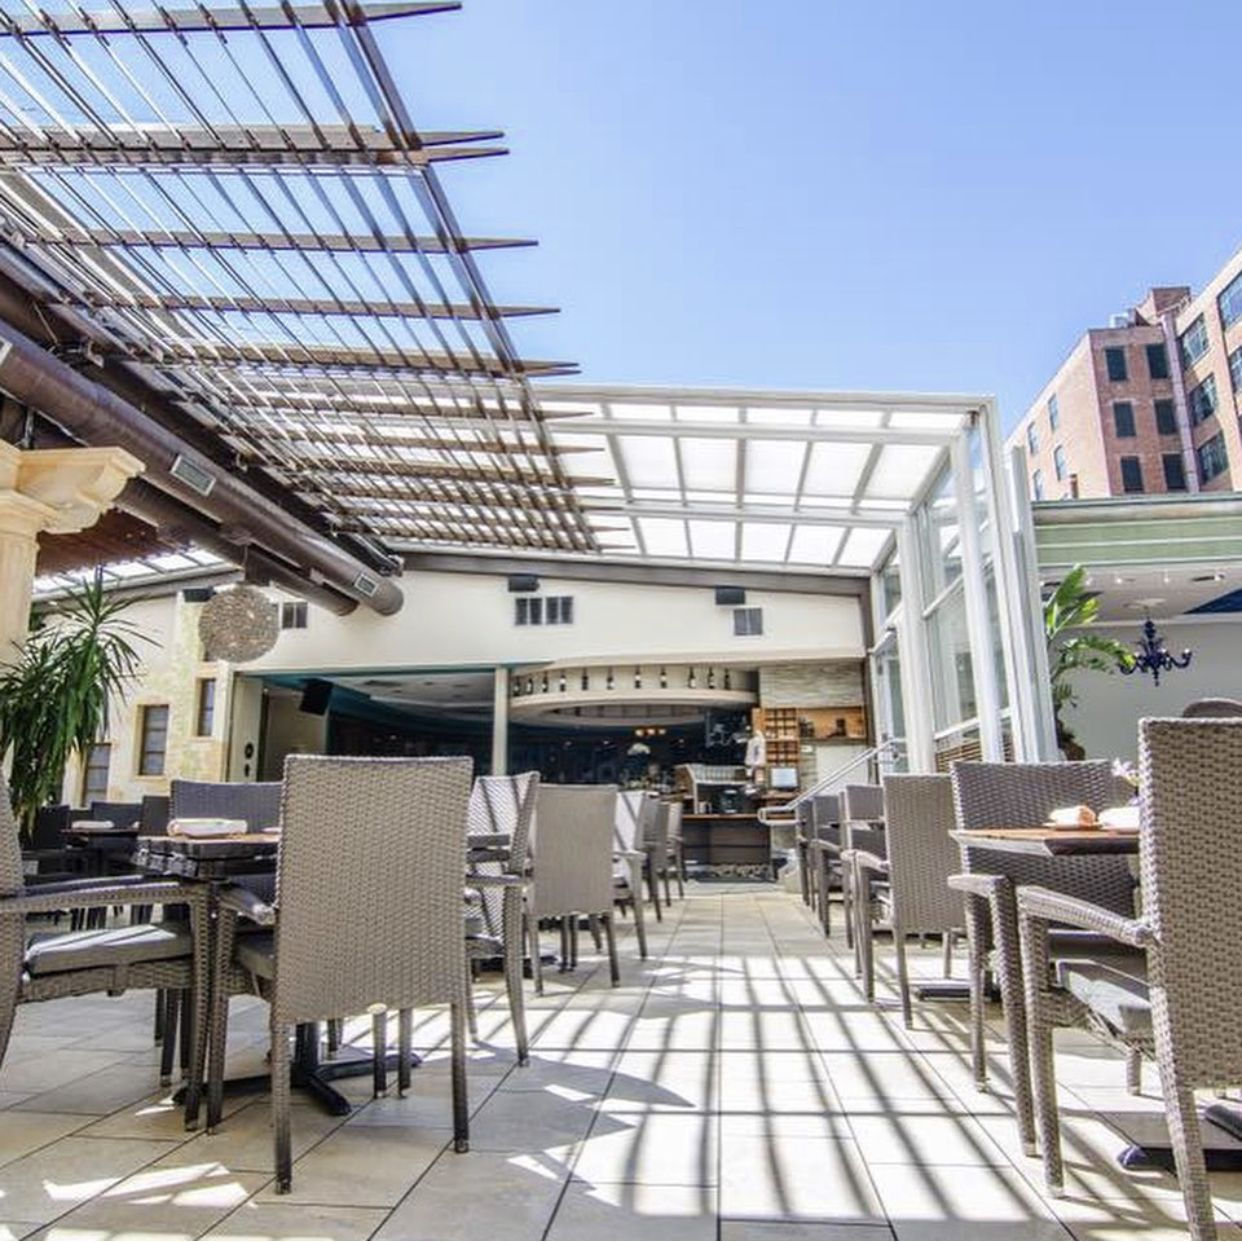 How to Create Year-Round Outdoor Dining for Your Restaurant